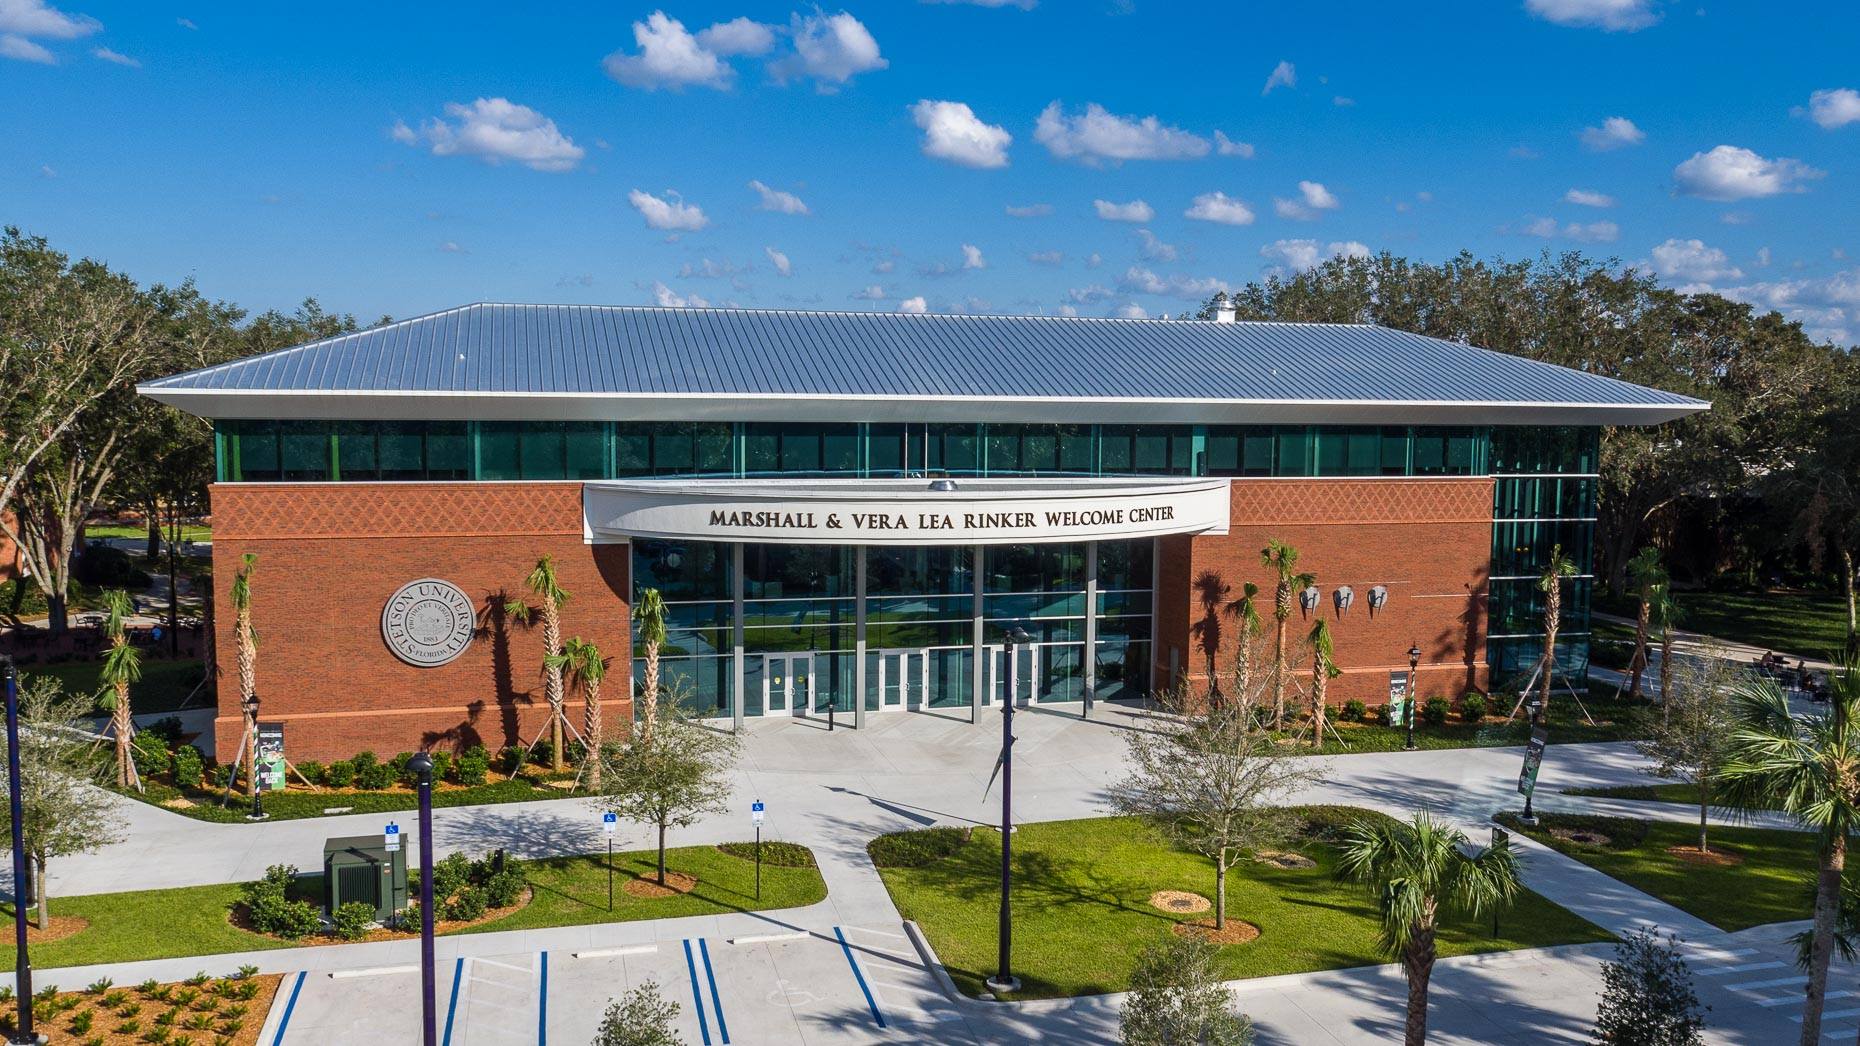 Aerial Stetson University Welcome Center - Mark Borosch Photography - DeLand, FL